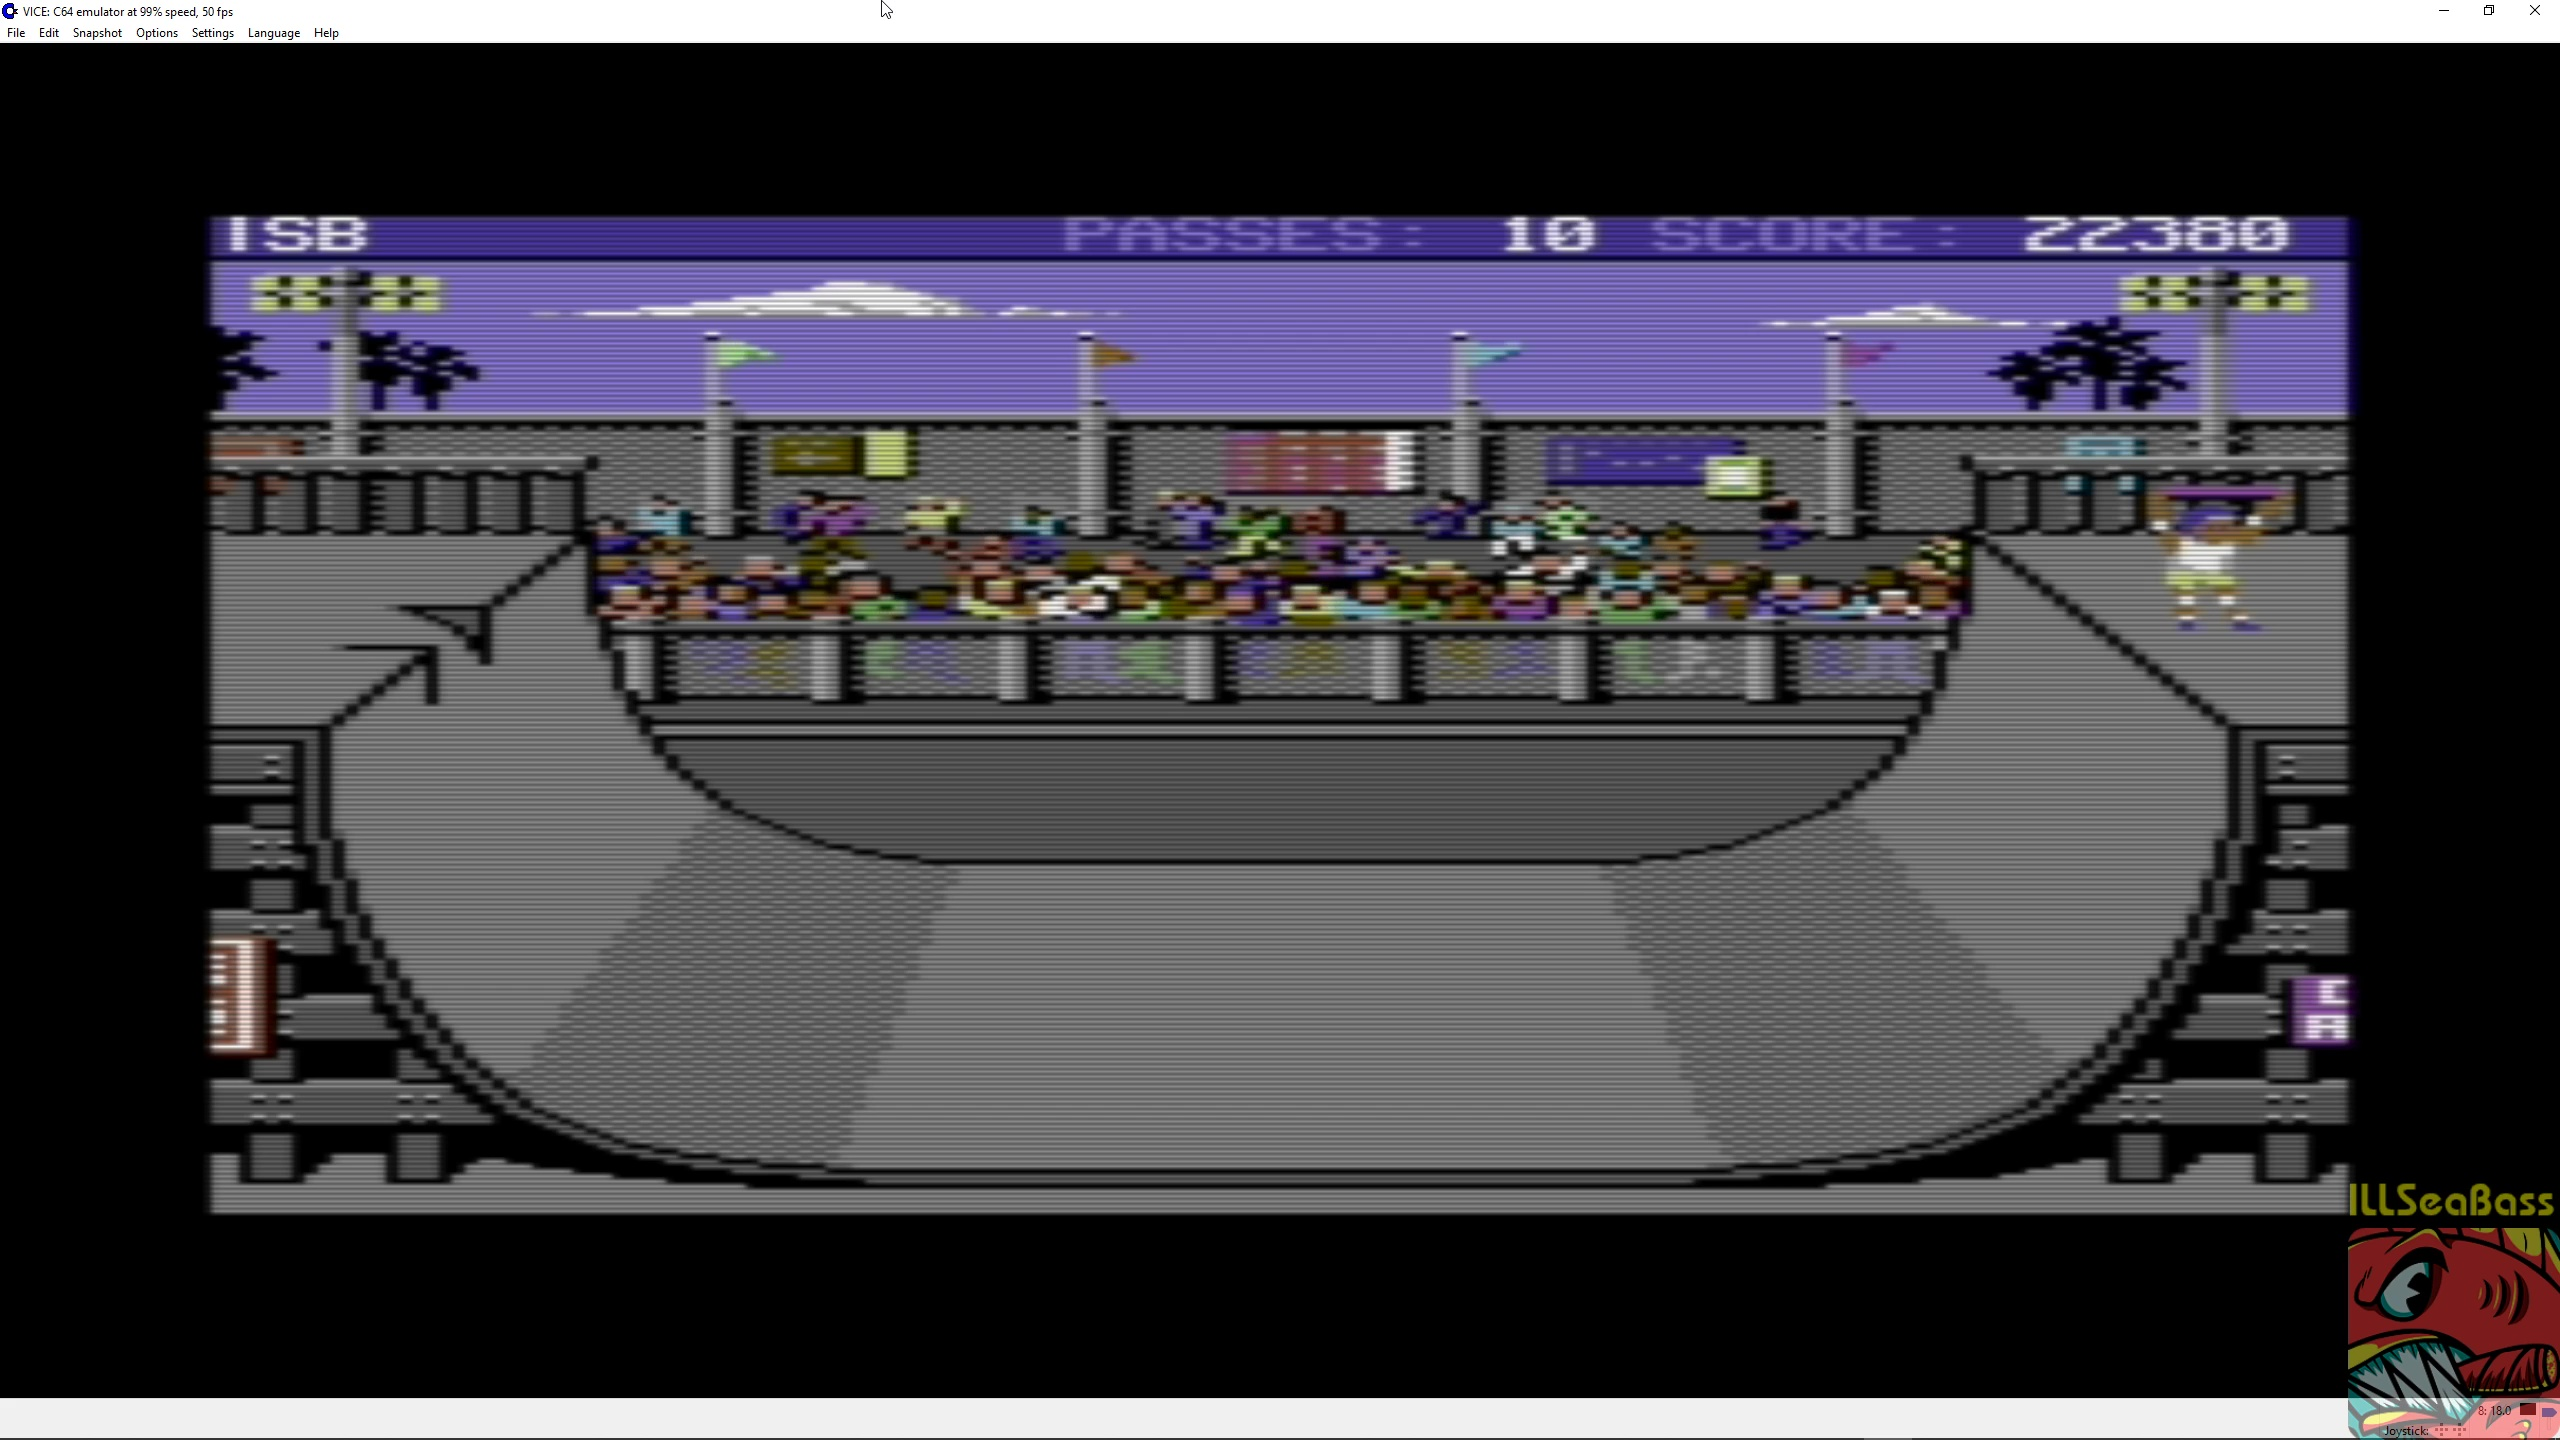 ILLSeaBass: Skate or Die [Ramp Freestyle] (Commodore 64 Emulated) 22,380 points on 2018-05-23 22:42:48